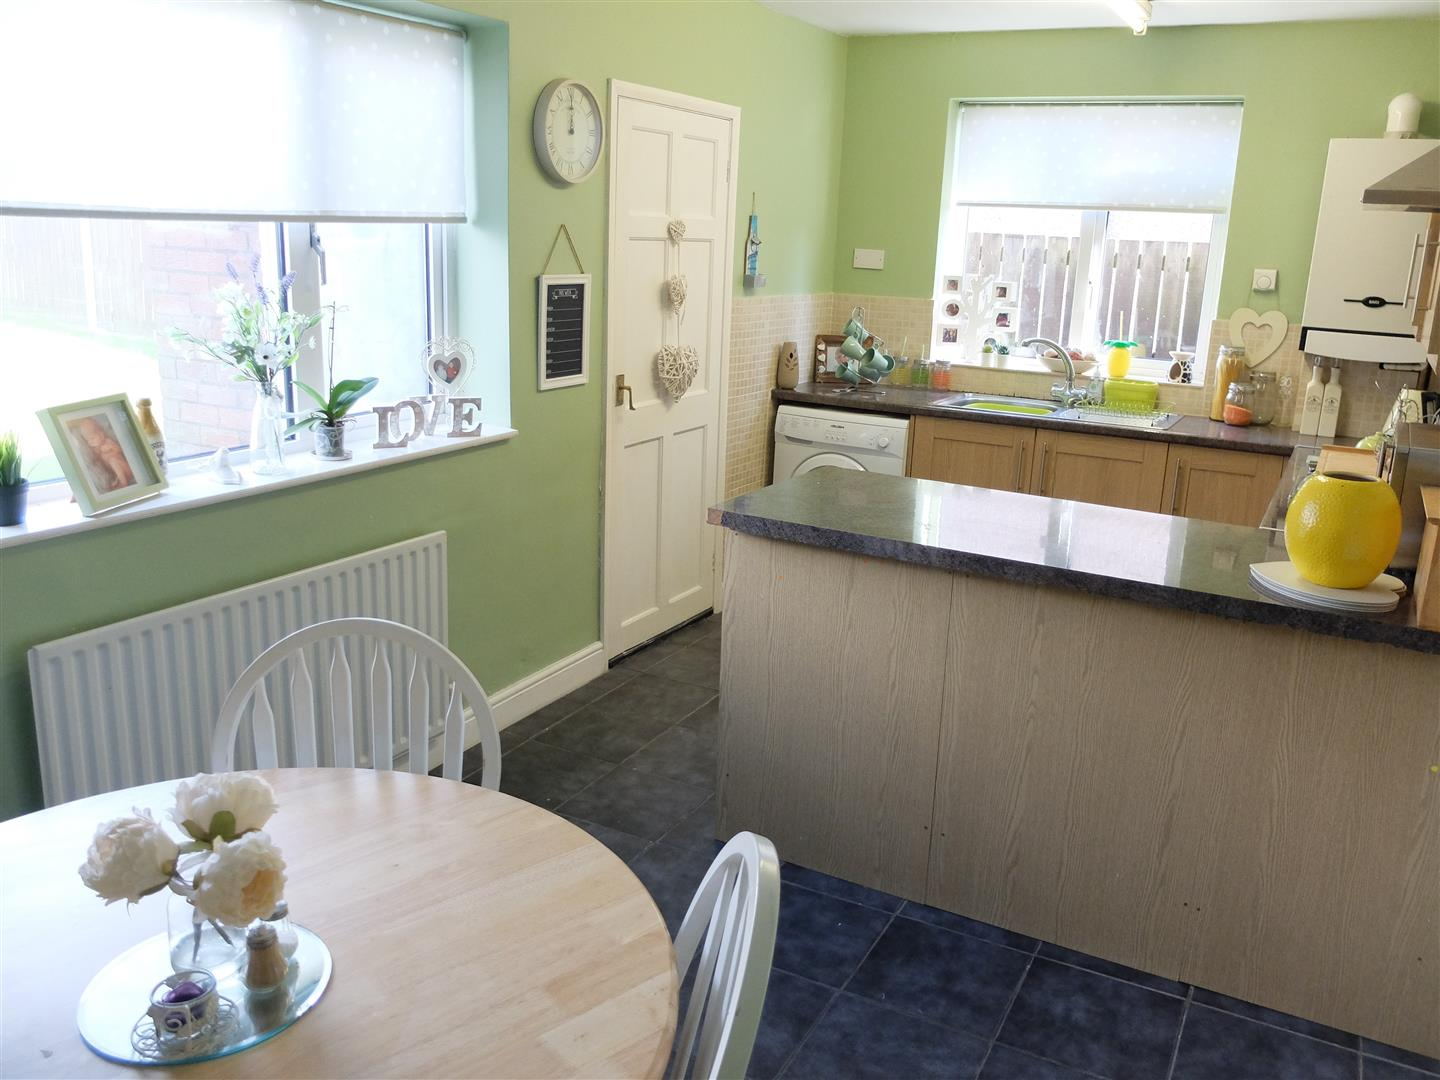 3 Bedrooms House - Semi-Detached On Sale 10 Jubilee Road Carlisle